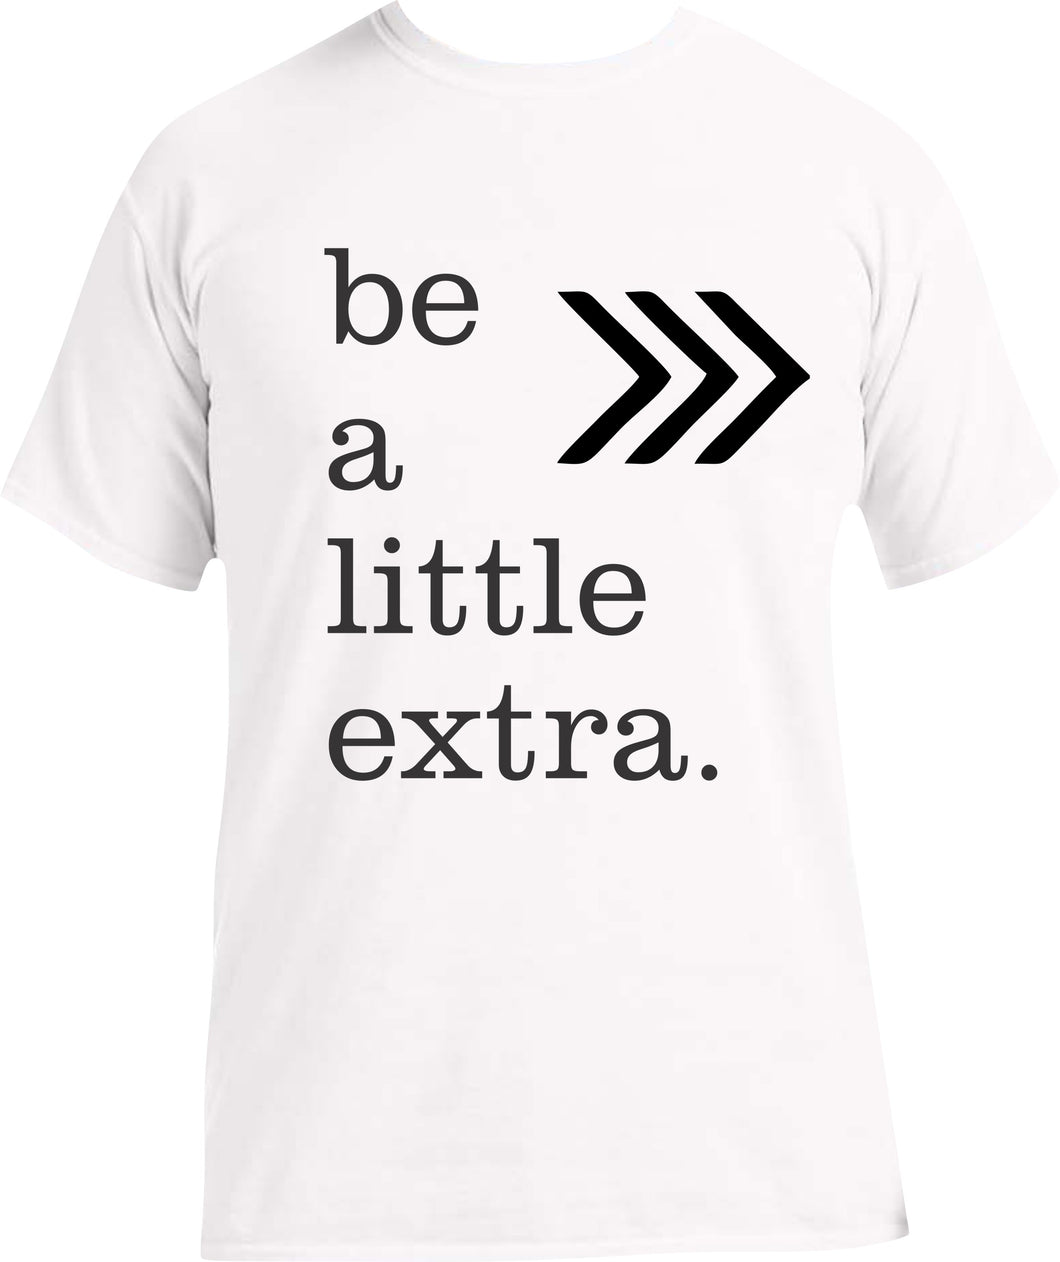 Tee: Be a Little Extra & Support Down Syndrome